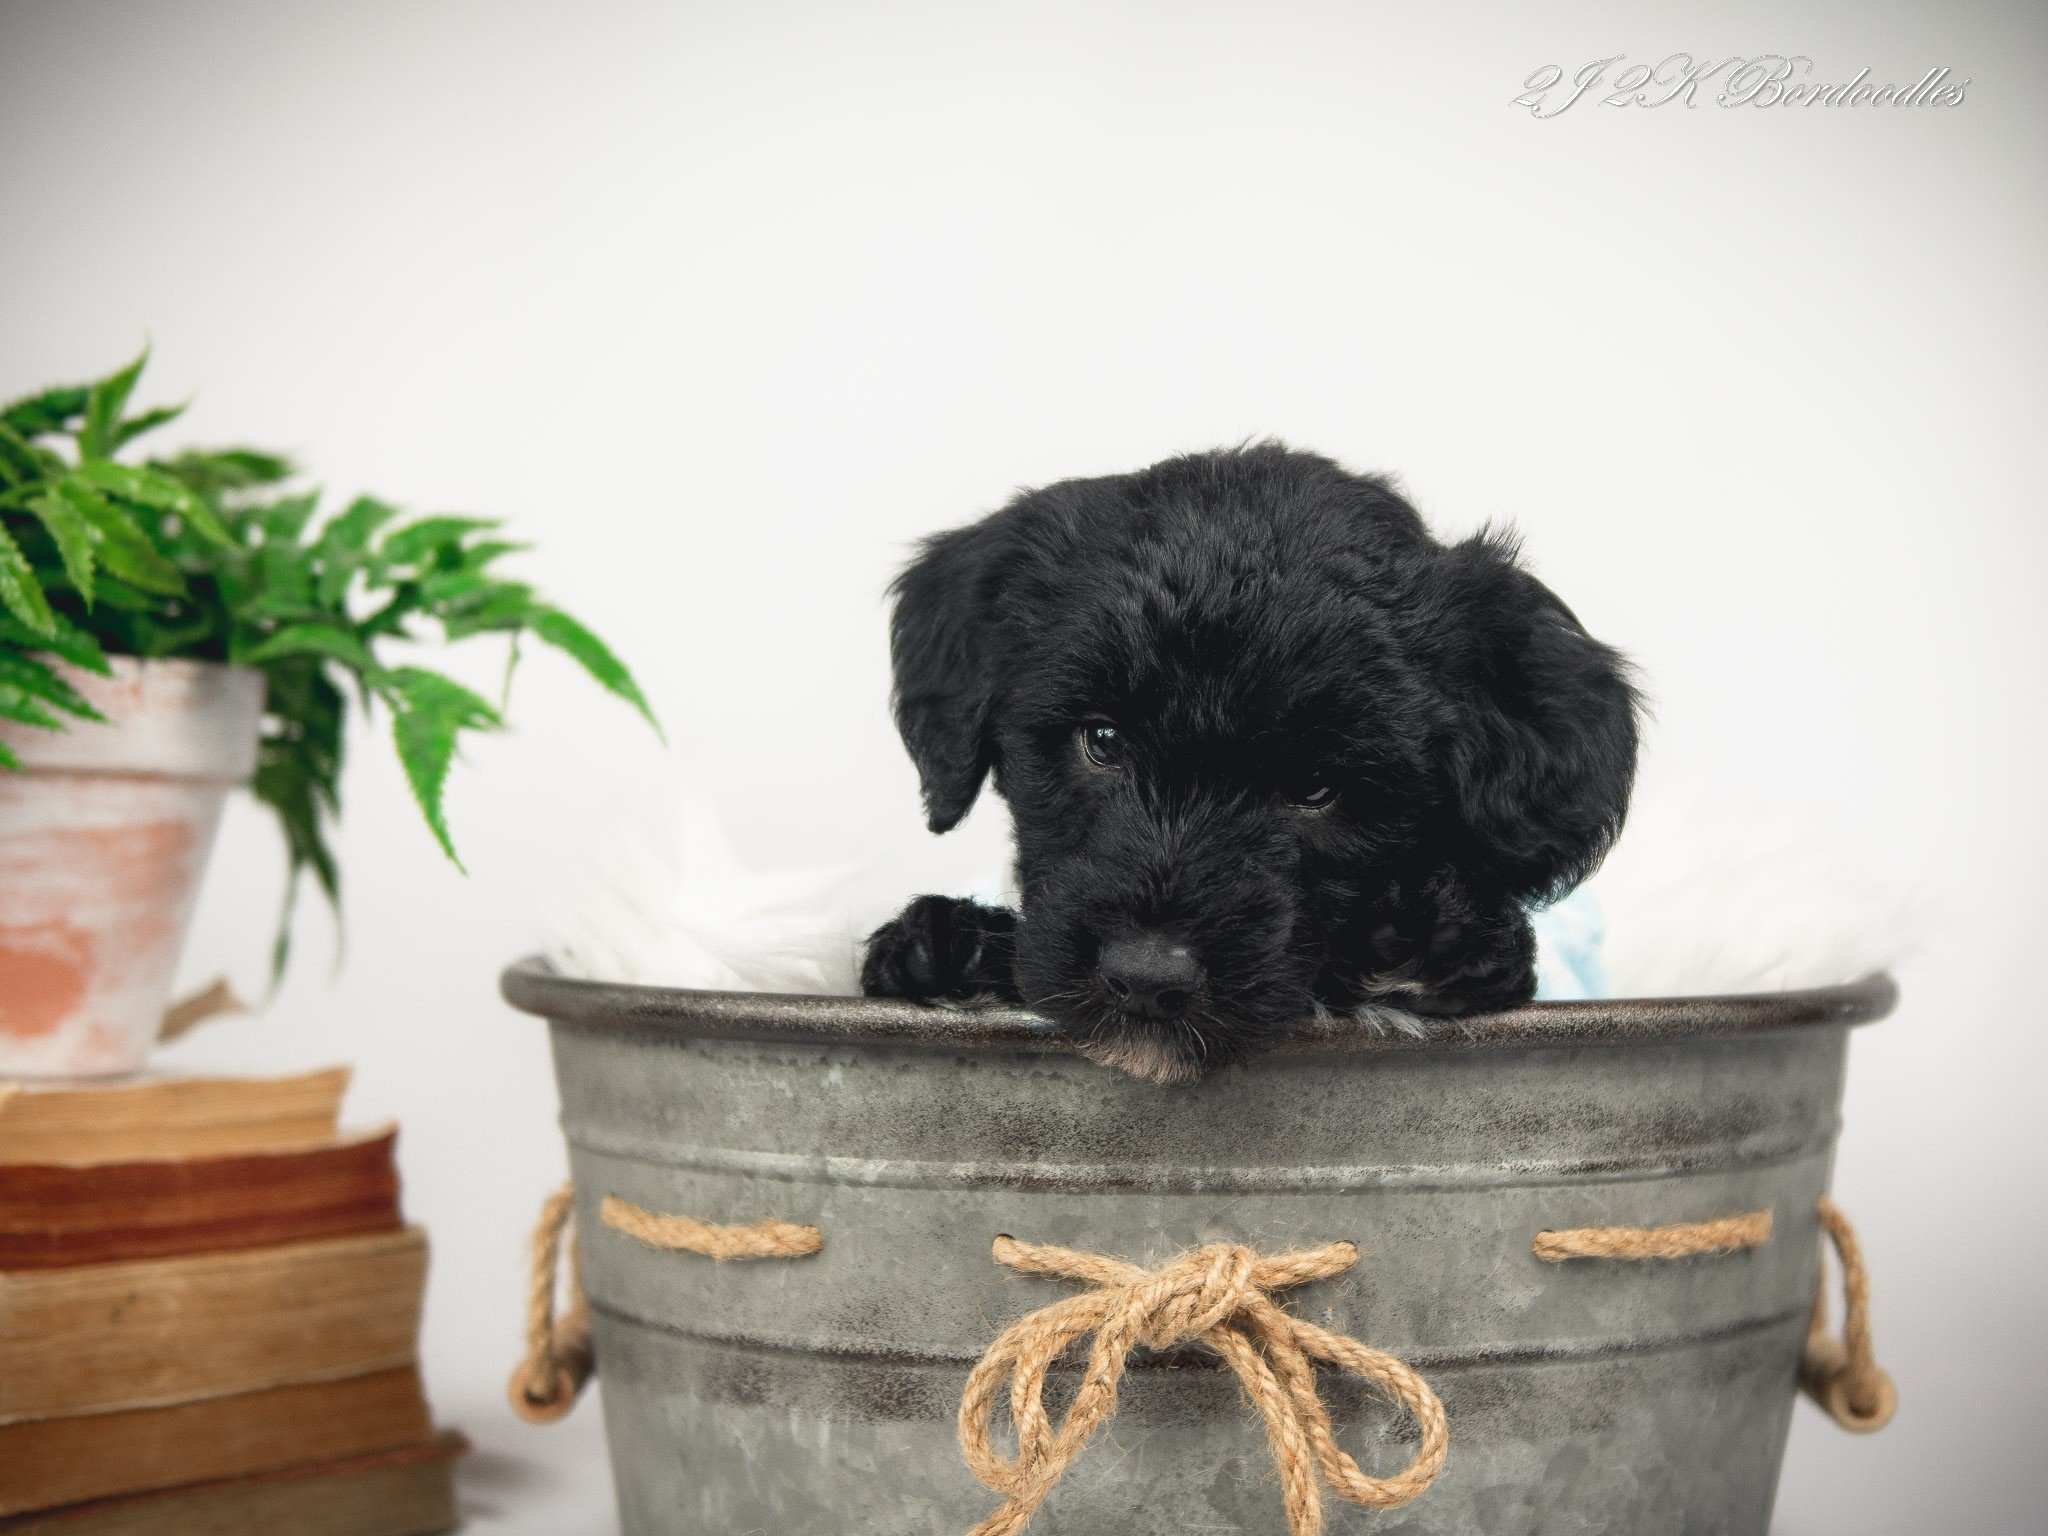 A black and white Bordoodle puppy sitting in a metal tub.